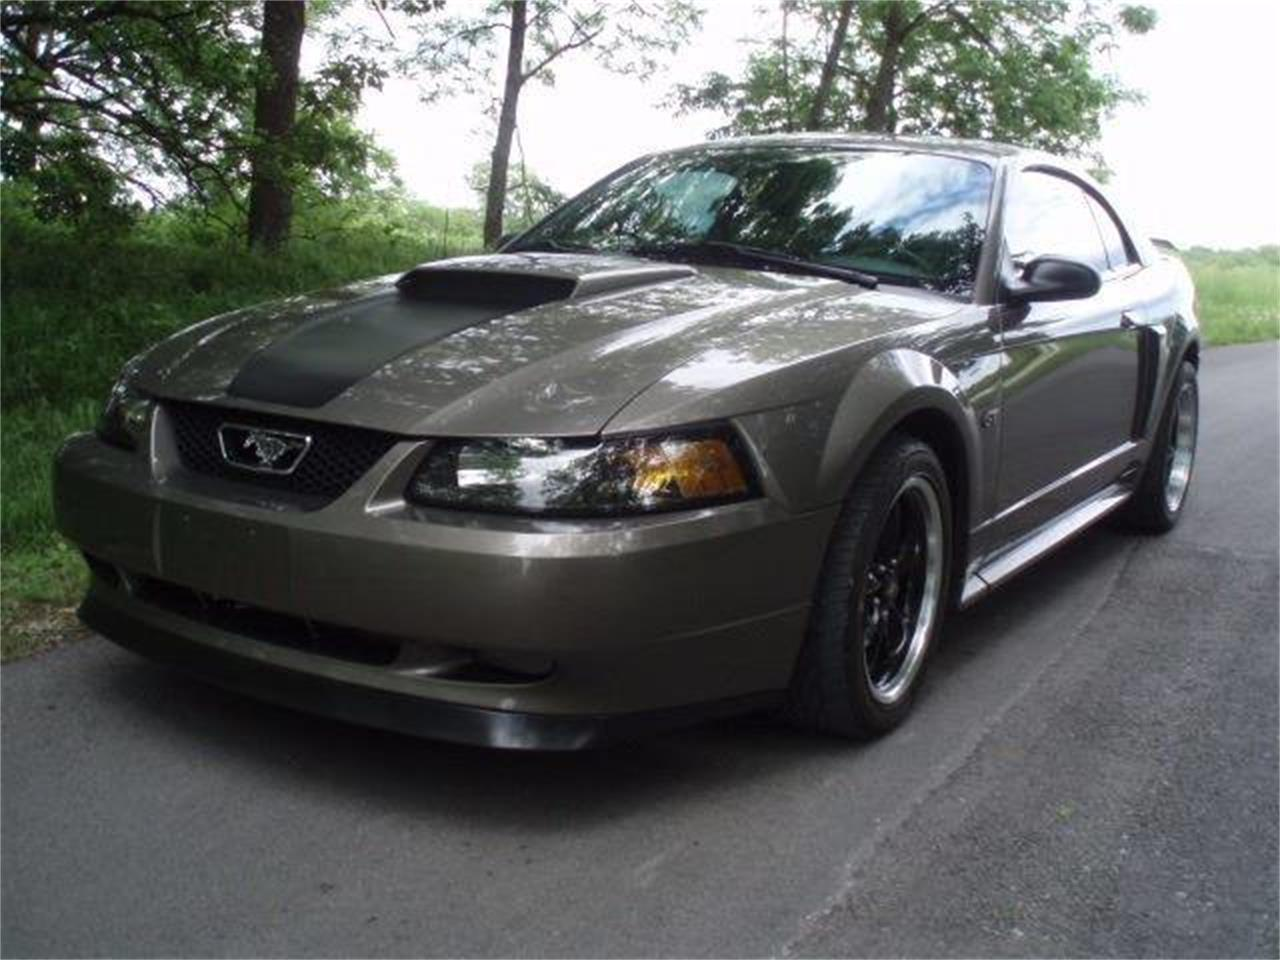 Large picture of 02 mustang nckg